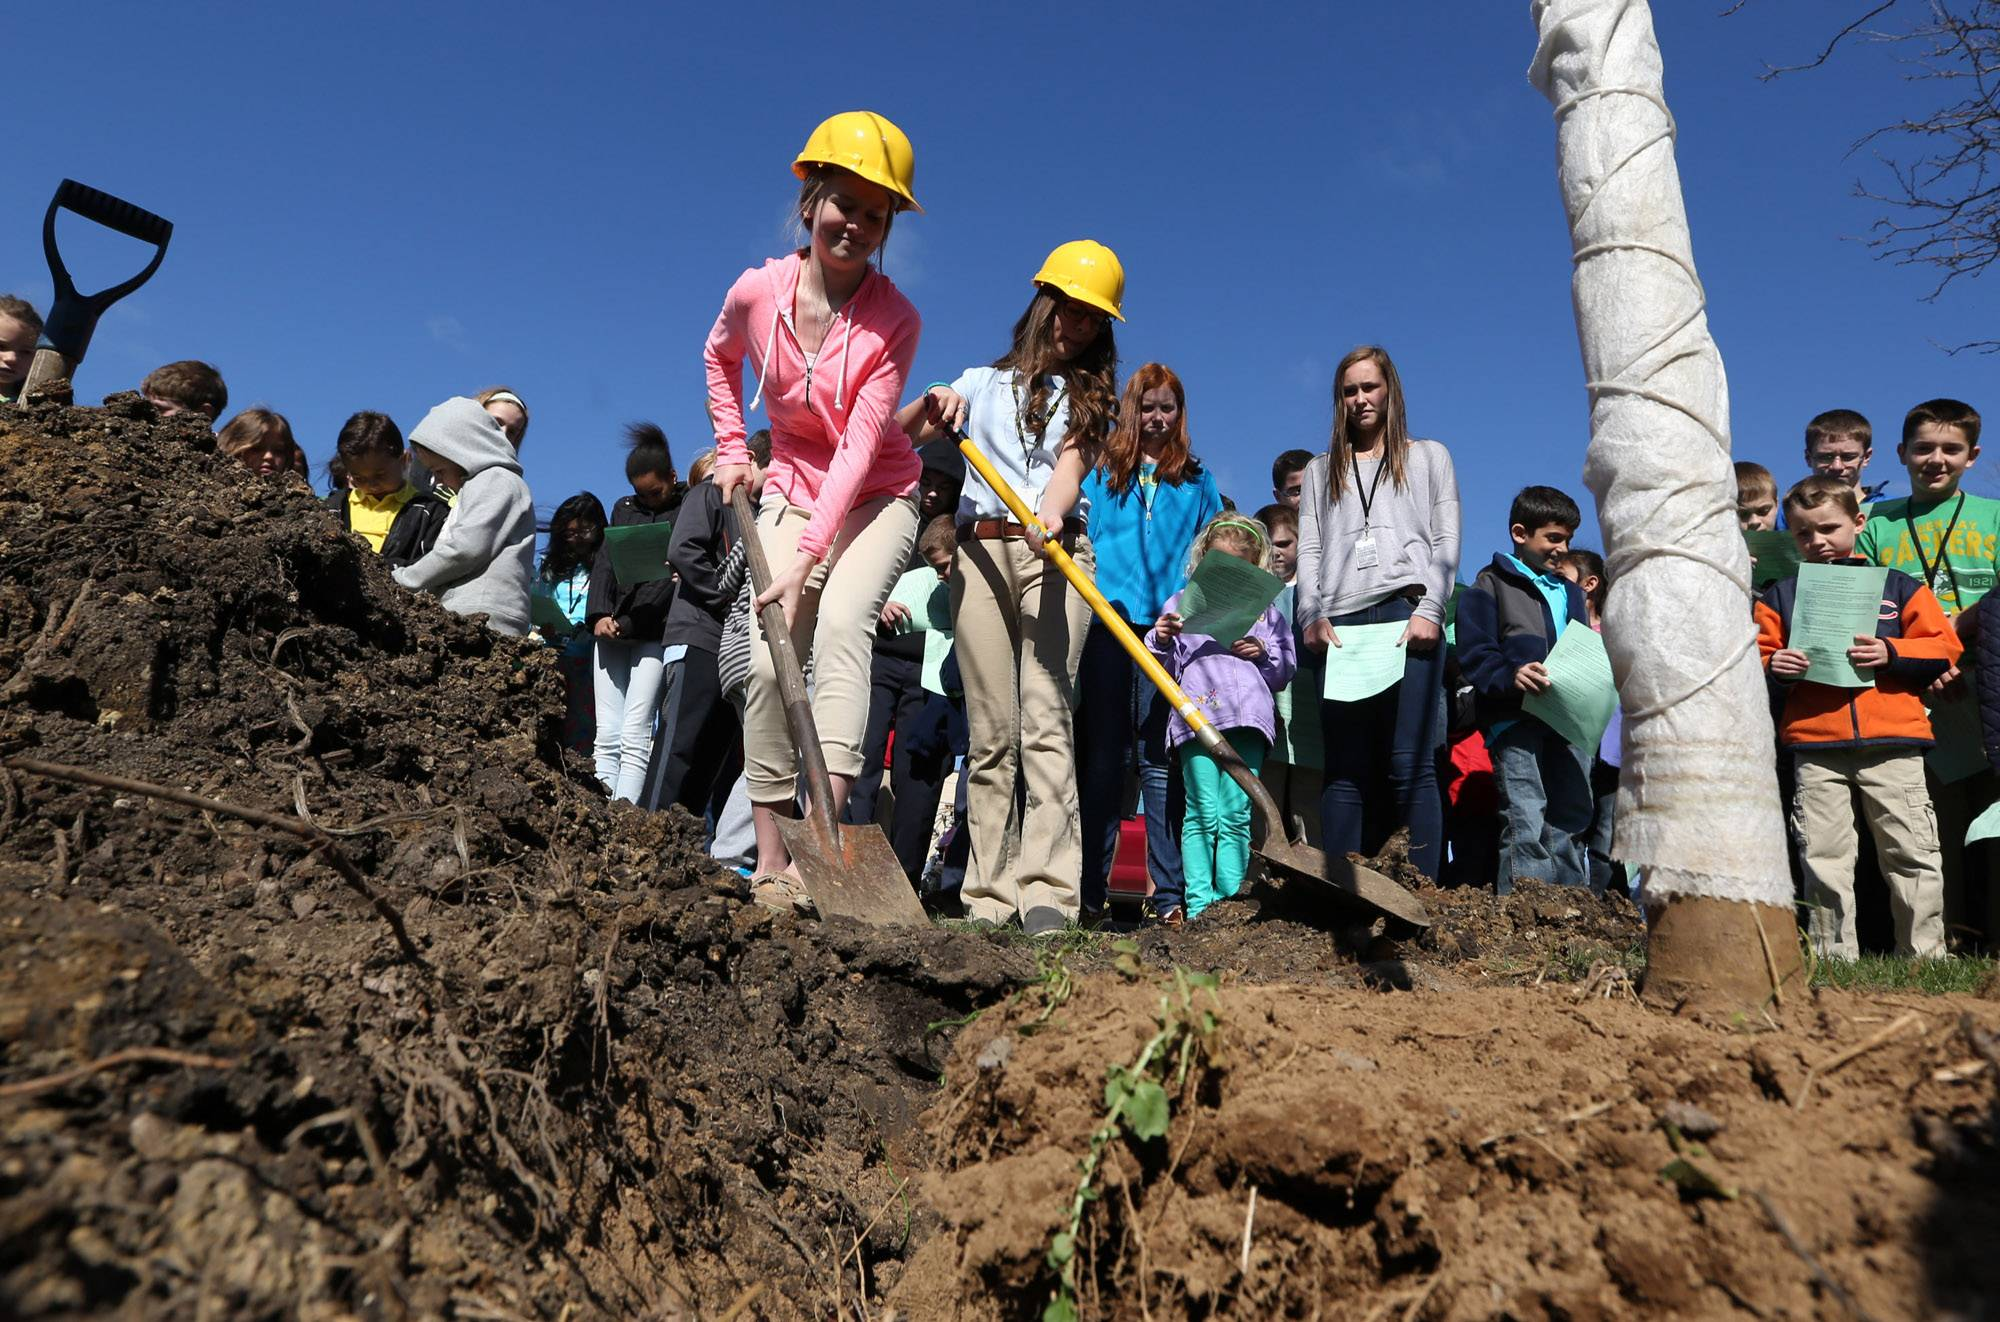 St. Joseph Catholic School eight-graders Kathleen Graham, left, and Bridget Horvath shovel dirt onto an autumn sugar maple tree during a tree planting ceremony Tuesday at the Libertyville school. All 400 students from the school attended the ceremony.